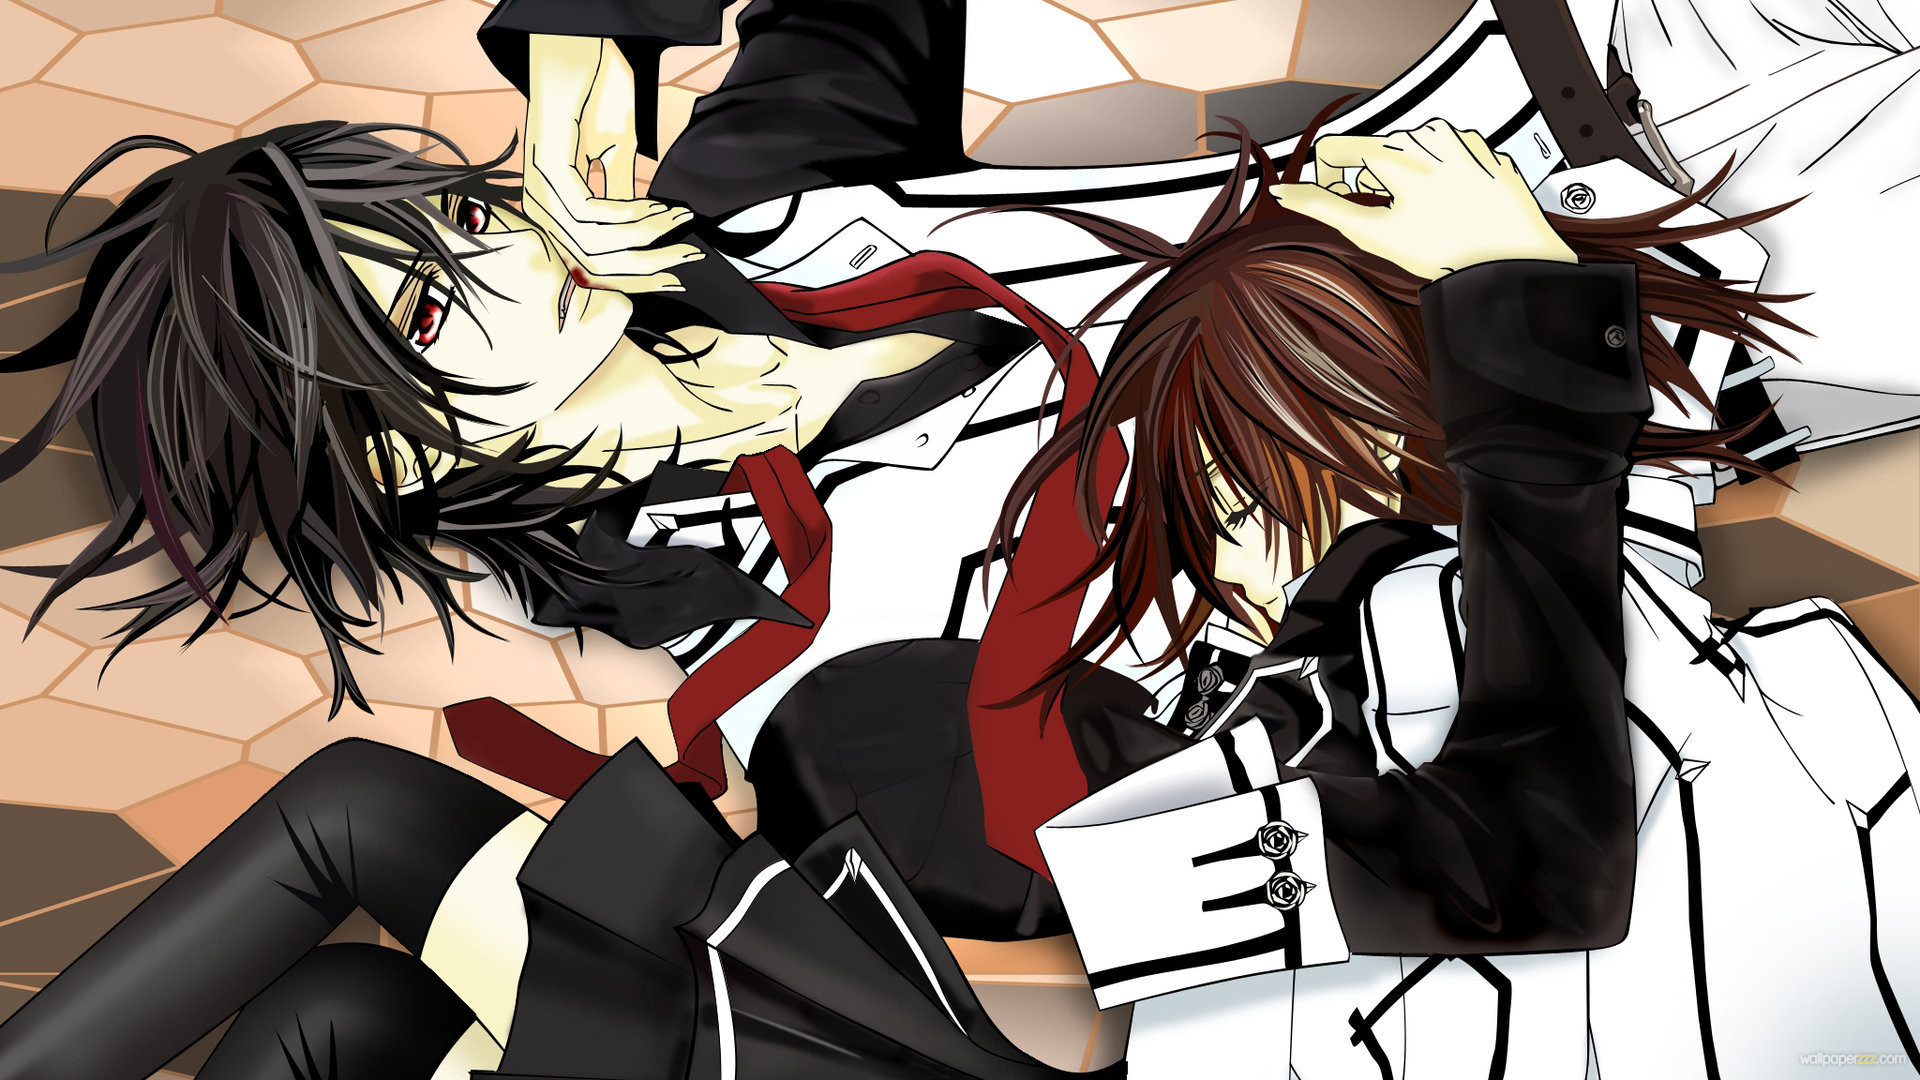 Anime wallpapers for laptop 65 images - Vampire knight anime wallpaper ...